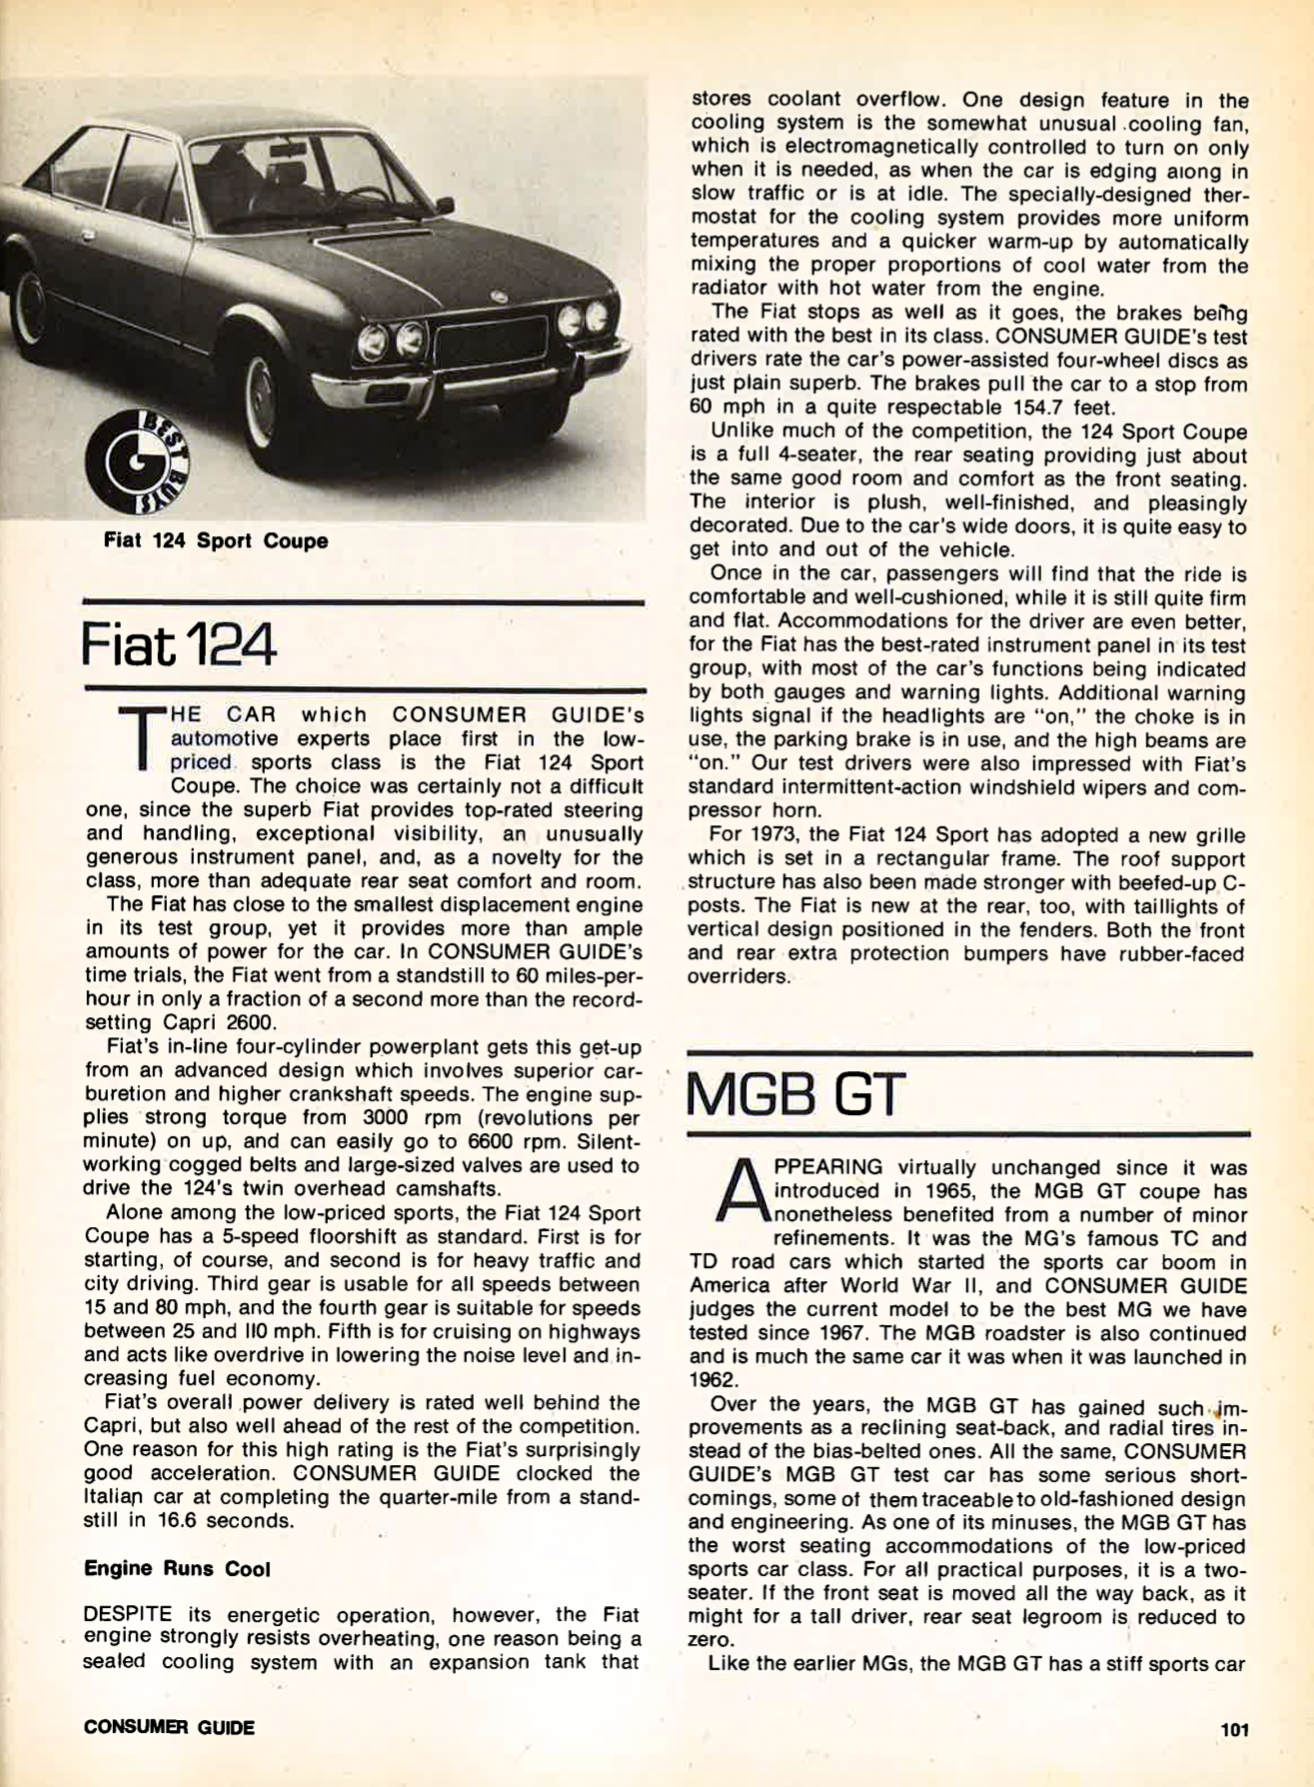 Sports Cars of 1973, 1973 Fiat 124 review, 1973 MGB GT review